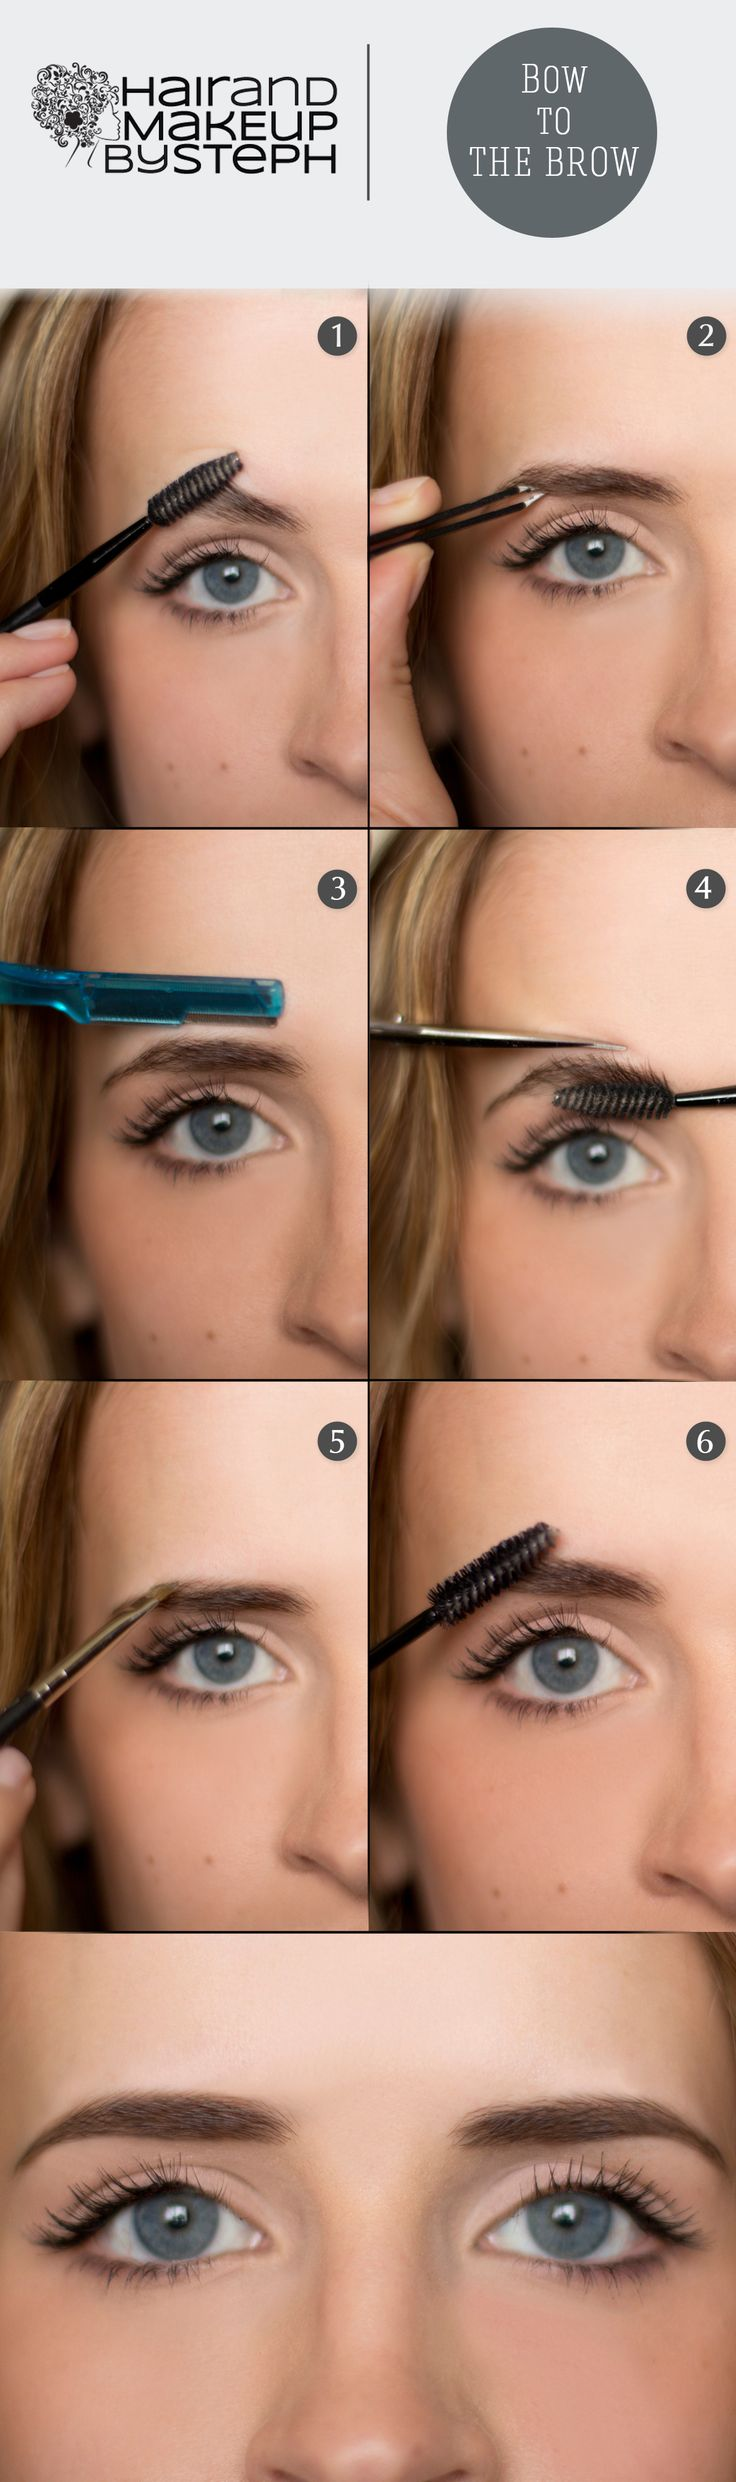 Bow to the Brow:  Eyebrow grooming tips.  blog.hairandmakeupbysteph.com